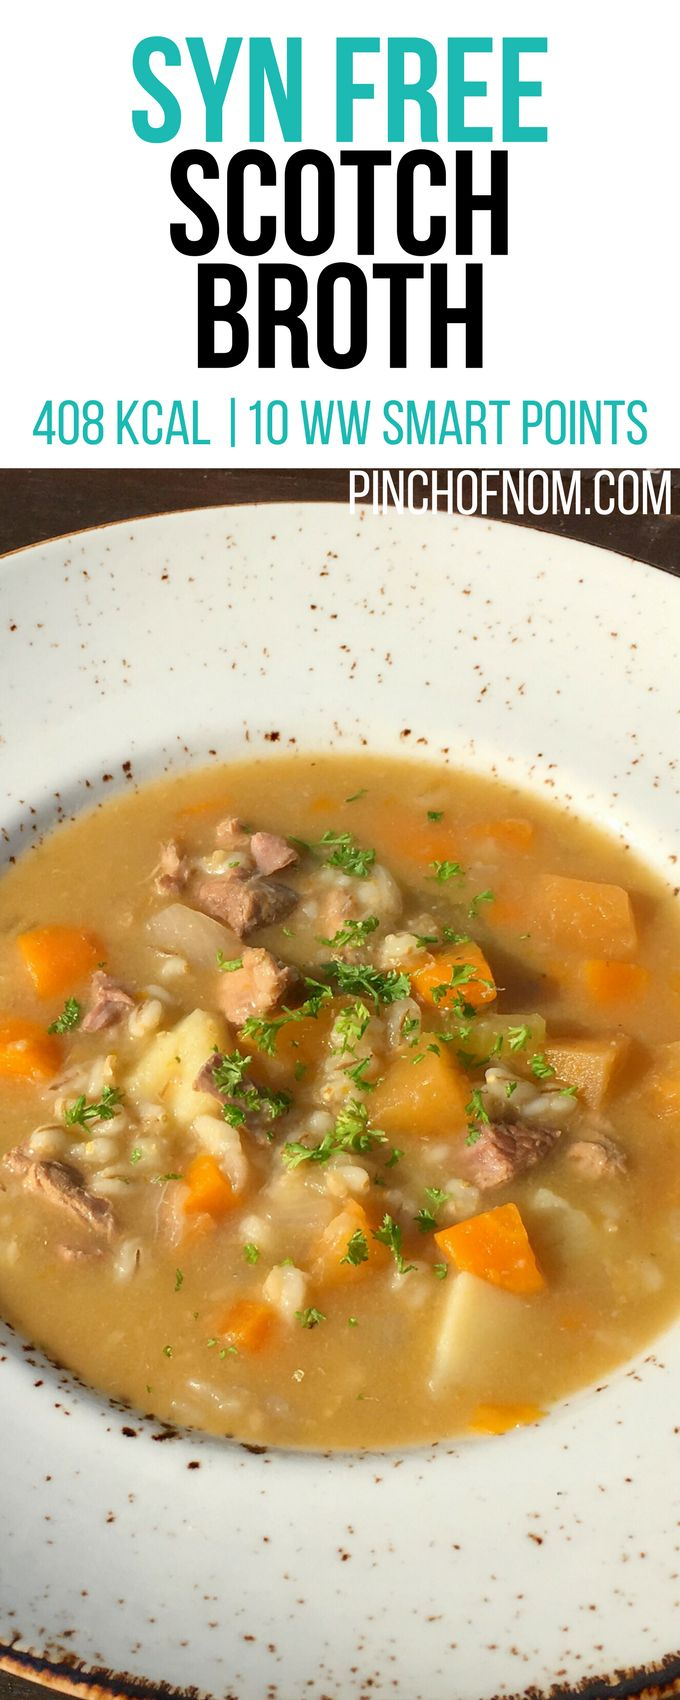 Syn Free Scotch Broth | Pinch Of Nom Slimming World Recipes 408 kcal | Syn Free | 10 Weight Watchers Smart Points